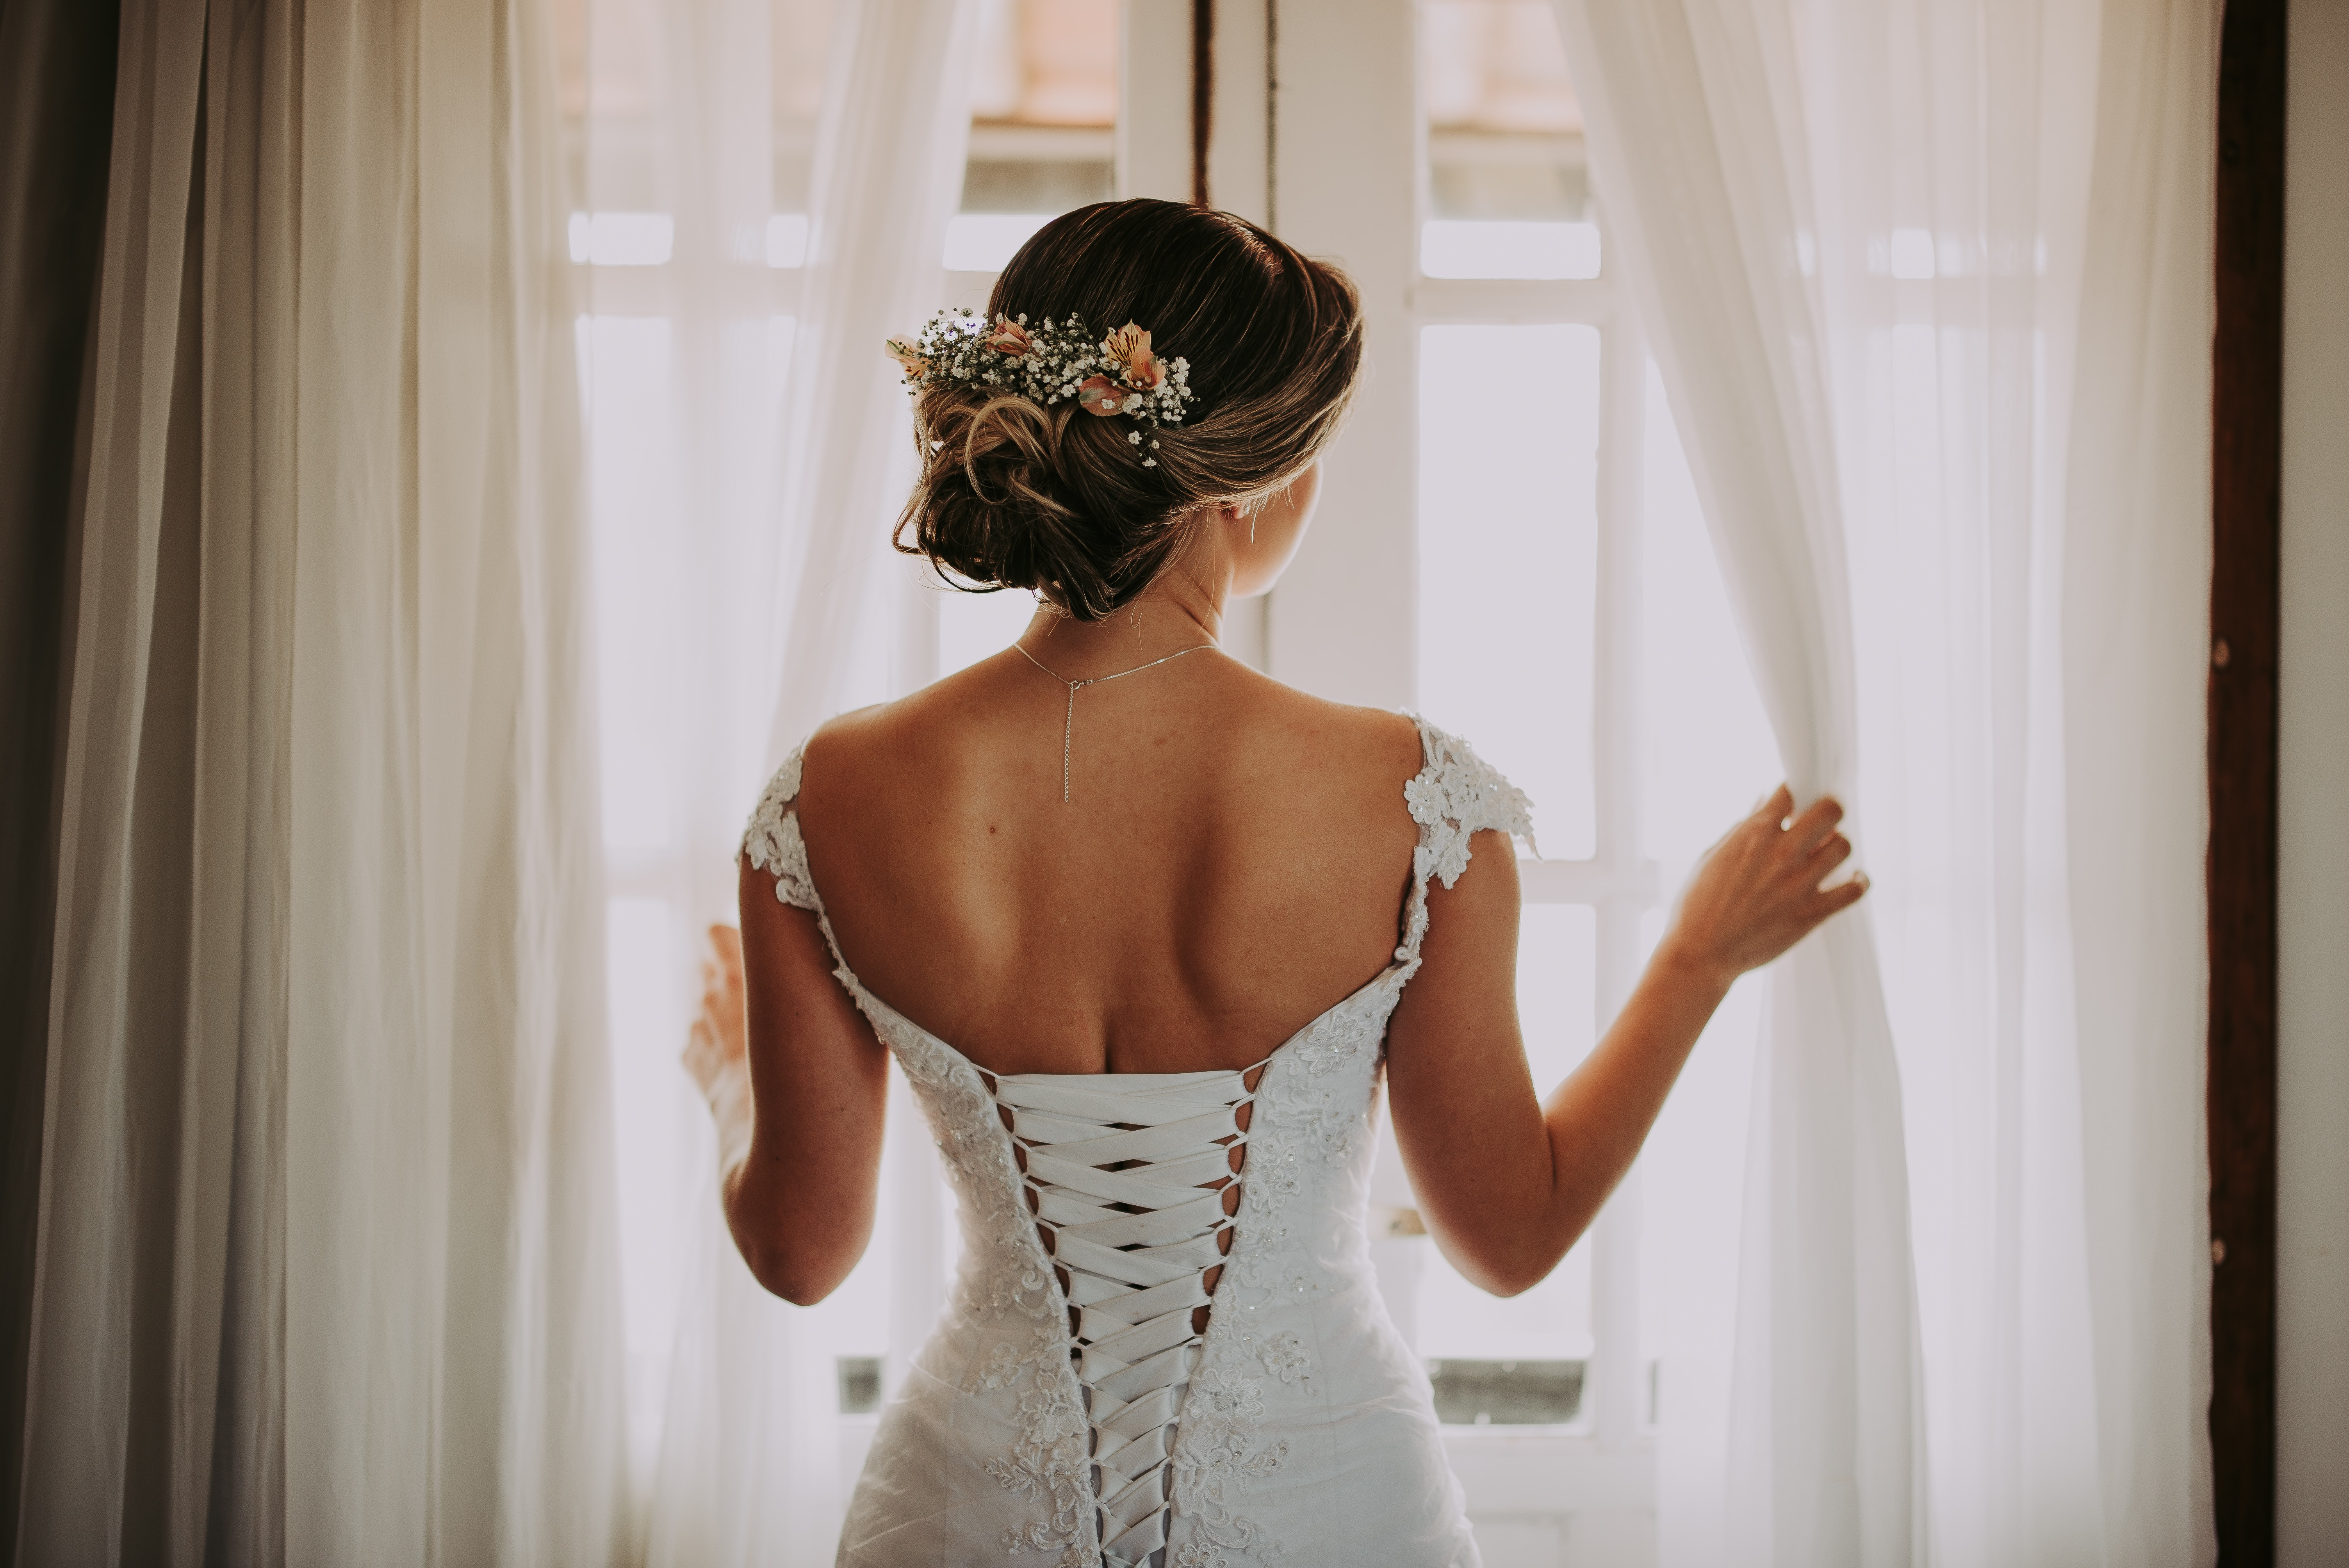 woman in wedding dress standing near window looking outside while holding the curtains